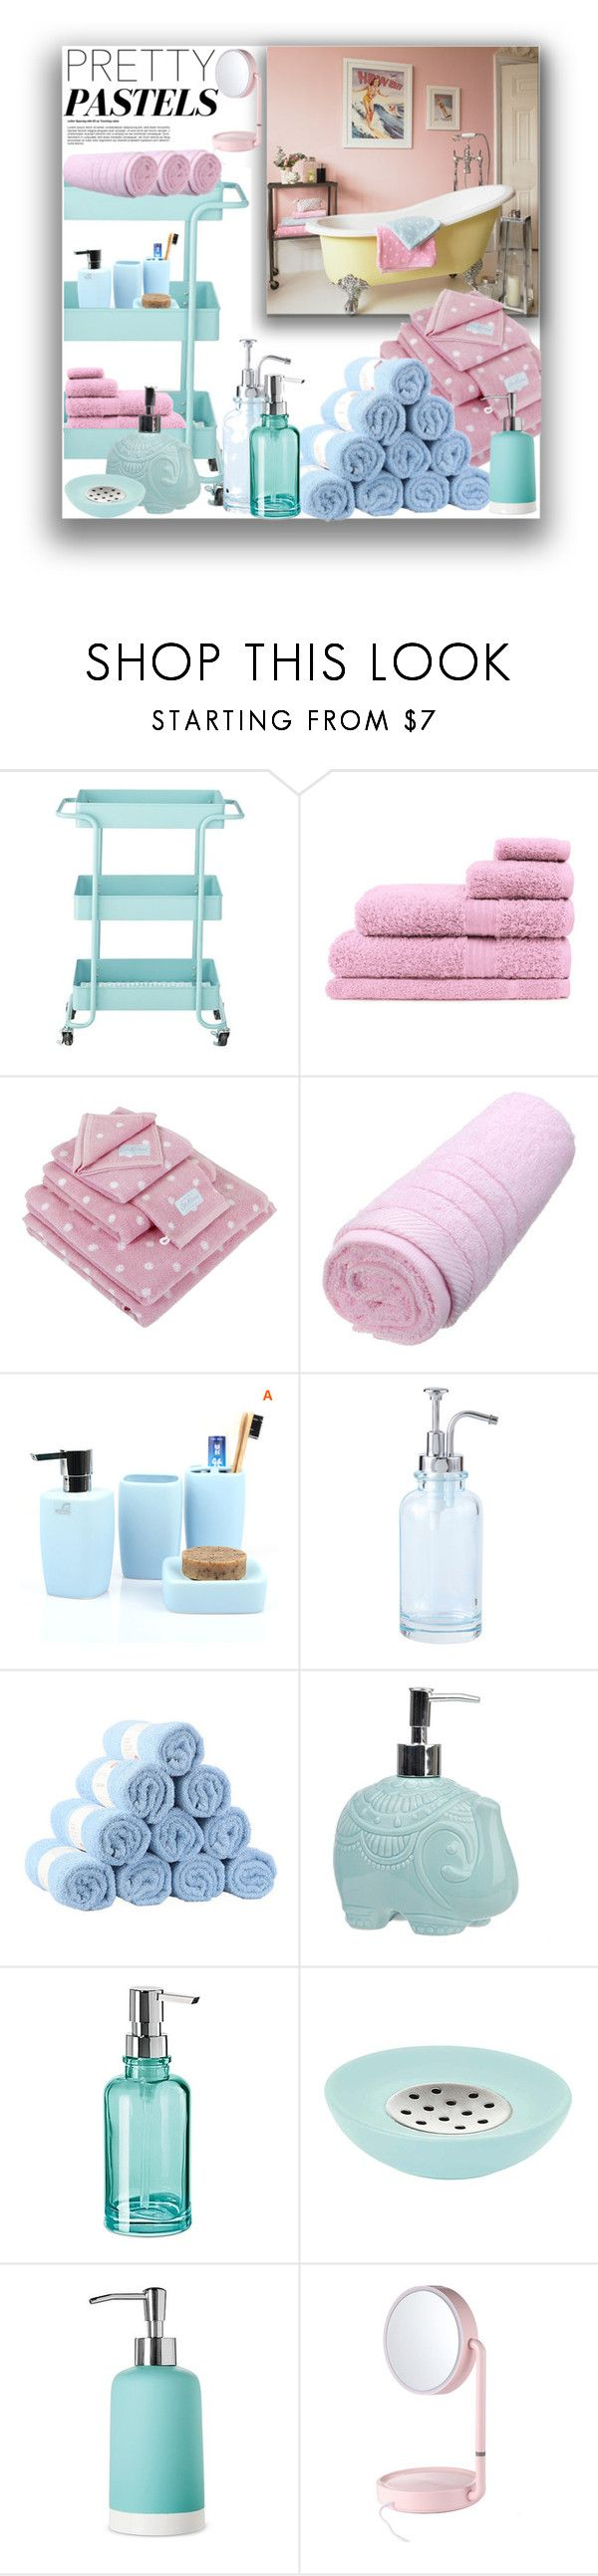 """""""Pasteldecor"""" by marionmeyer ❤ liked on Polyvore featuring interior, interiors, interior design, home, home decor, interior decorating, Home Decorators Collection, Cath Kidston, Oggi and Aquanova"""